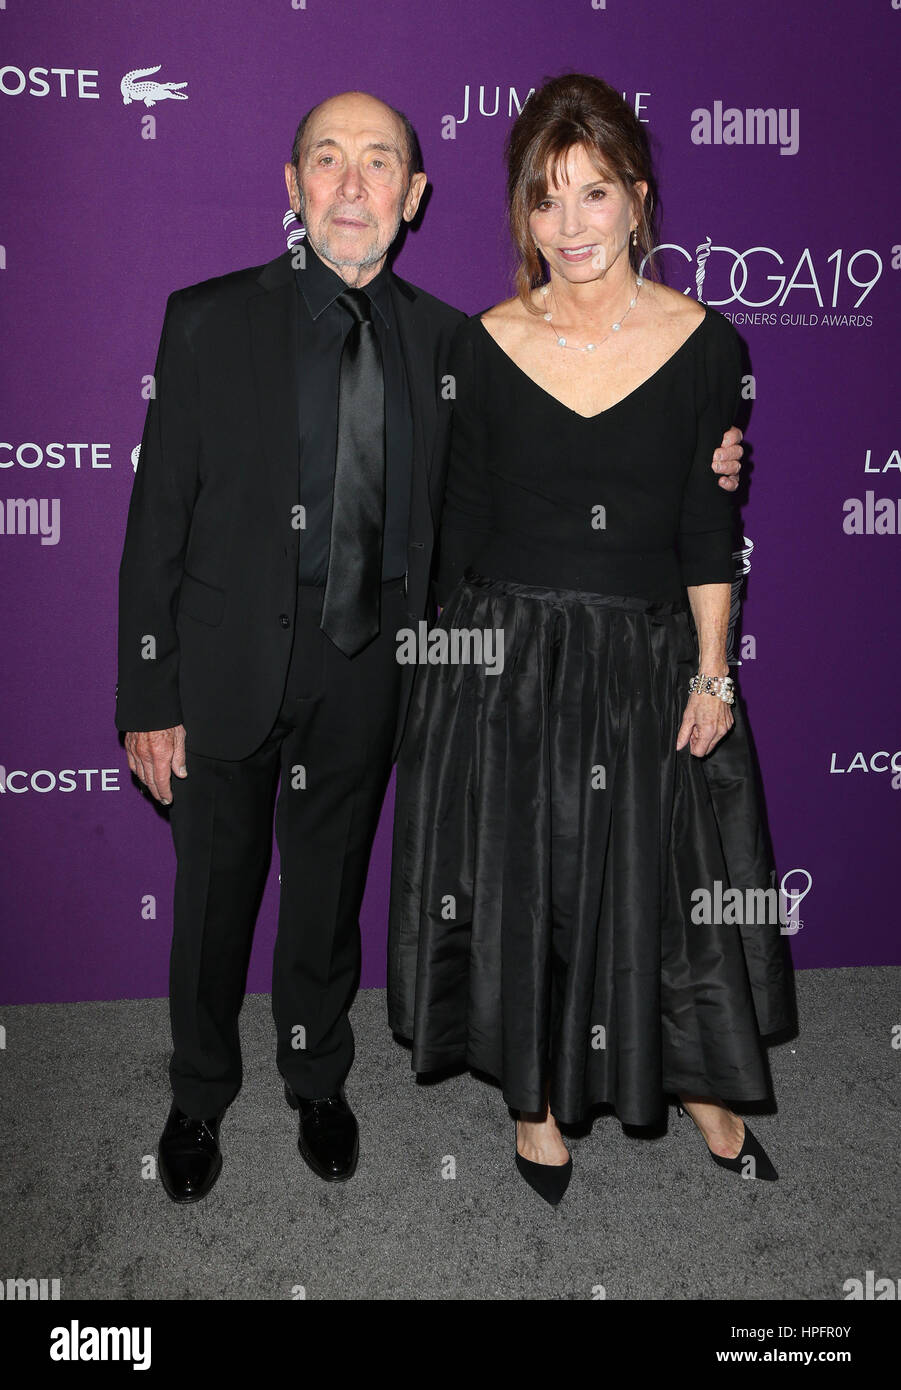 Beverly Hills, CA. 21st Feb, 2017. Albert Wolsky, Susan Hall, At 19th CDGA (Costume Designers Guild Awards), At - Stock Image